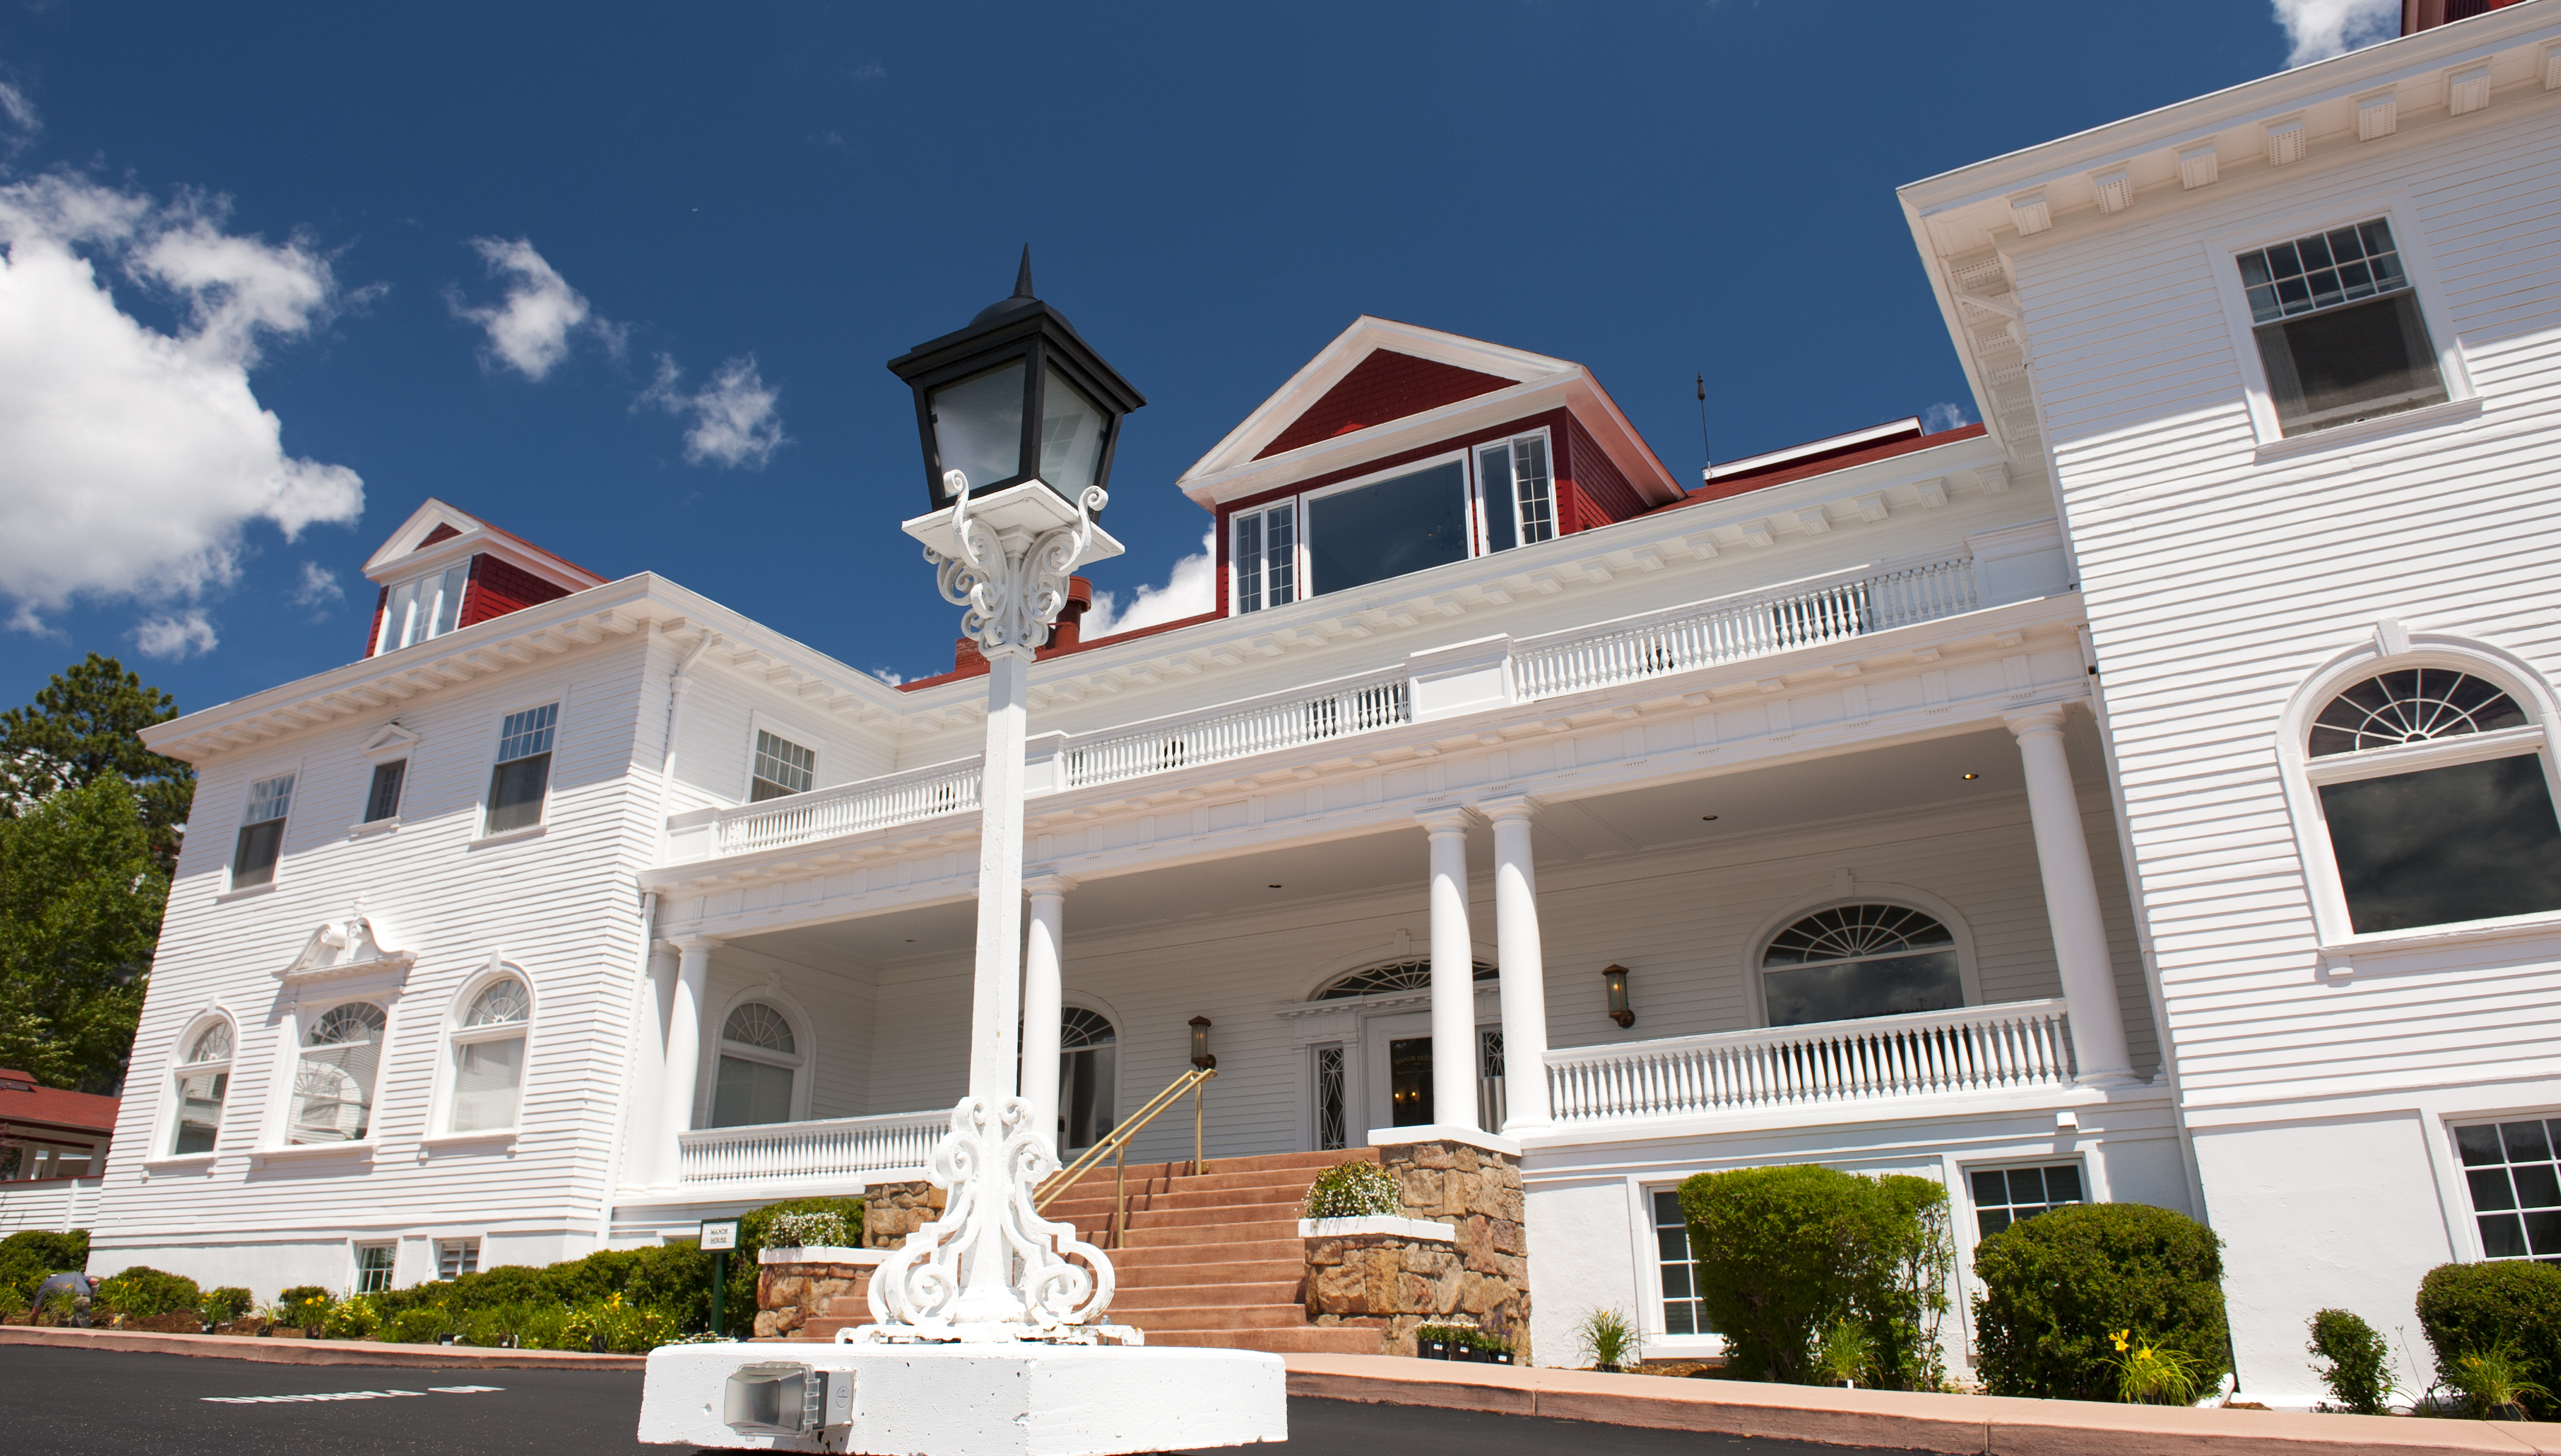 Weekend Staycation at The Stanley Hotel - Colorado Real ...